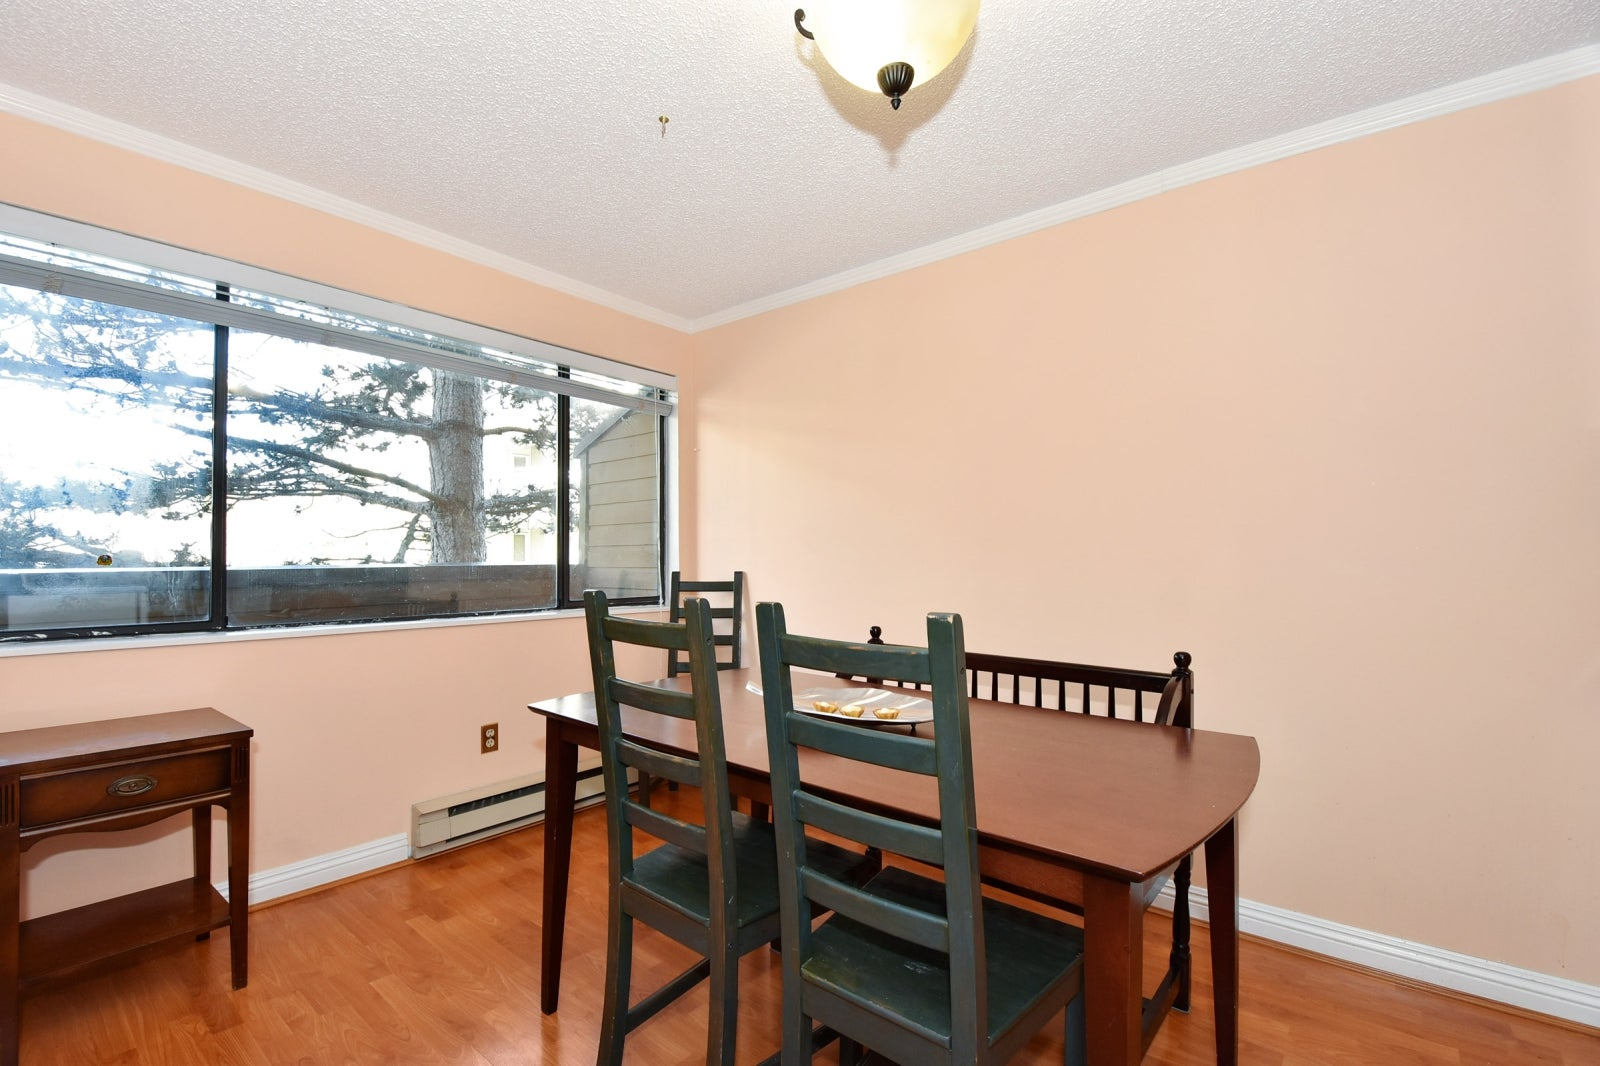 168 7293 MOFFATT ROAD - Brighouse South Apartment/Condo for sale, 2 Bedrooms (R2261480) #9